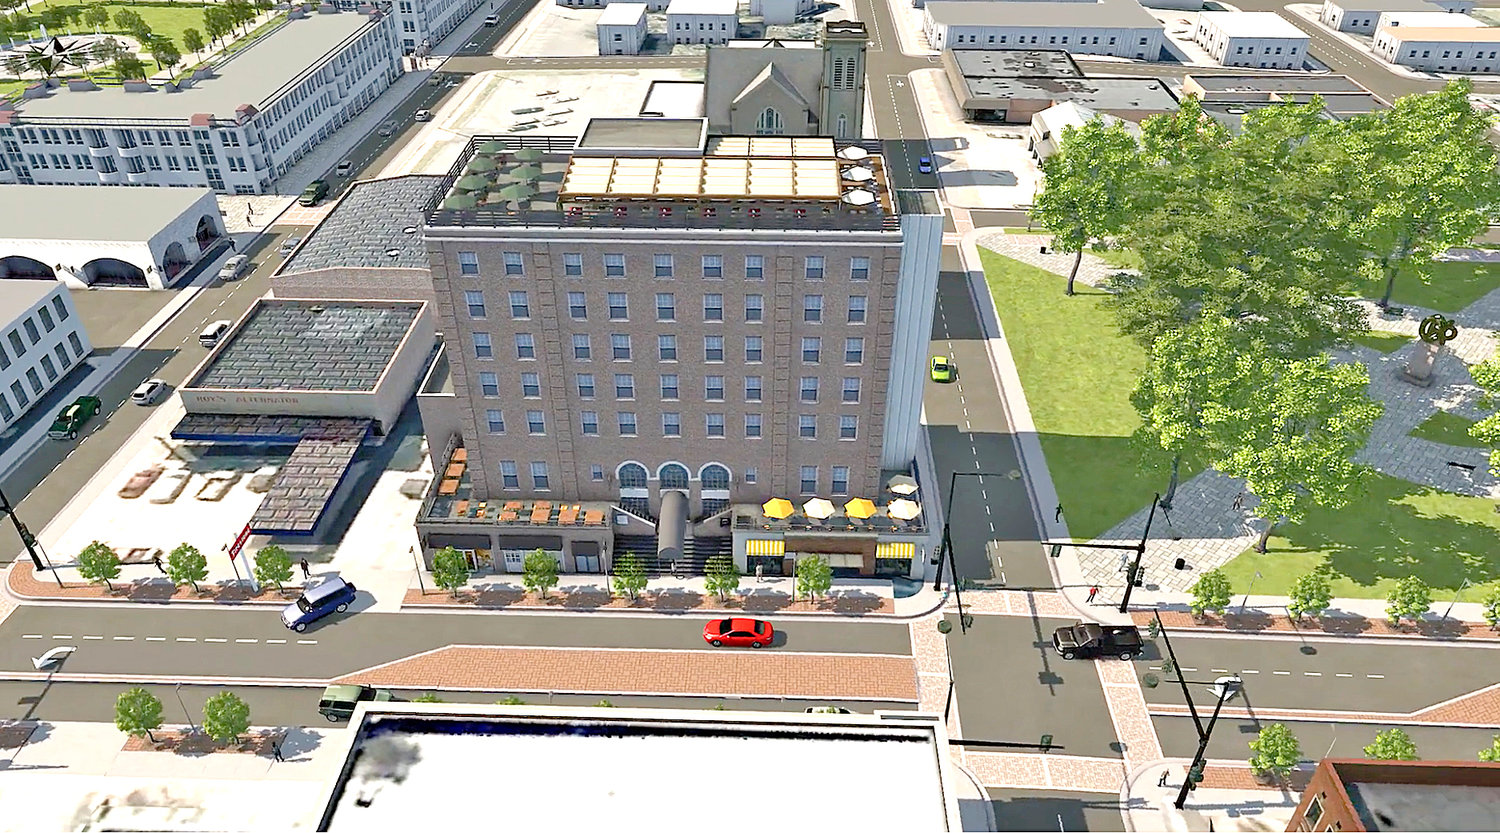 AN ARTIST'S RENDERING shows the transformation of the former Cherokee Hotel in downtown Cleveland. Currently, the location of Cleveland Summit — a low-cost housing facility, the structure will be converted into a 65-room boutique hotel featuring a mix of retail shops on its first floor, as well as an open-air restaurant on its top floor. The initiative is one of three proposed catalyst projects included in the city's recently unveiled Downtown Revitalization Master Plan.